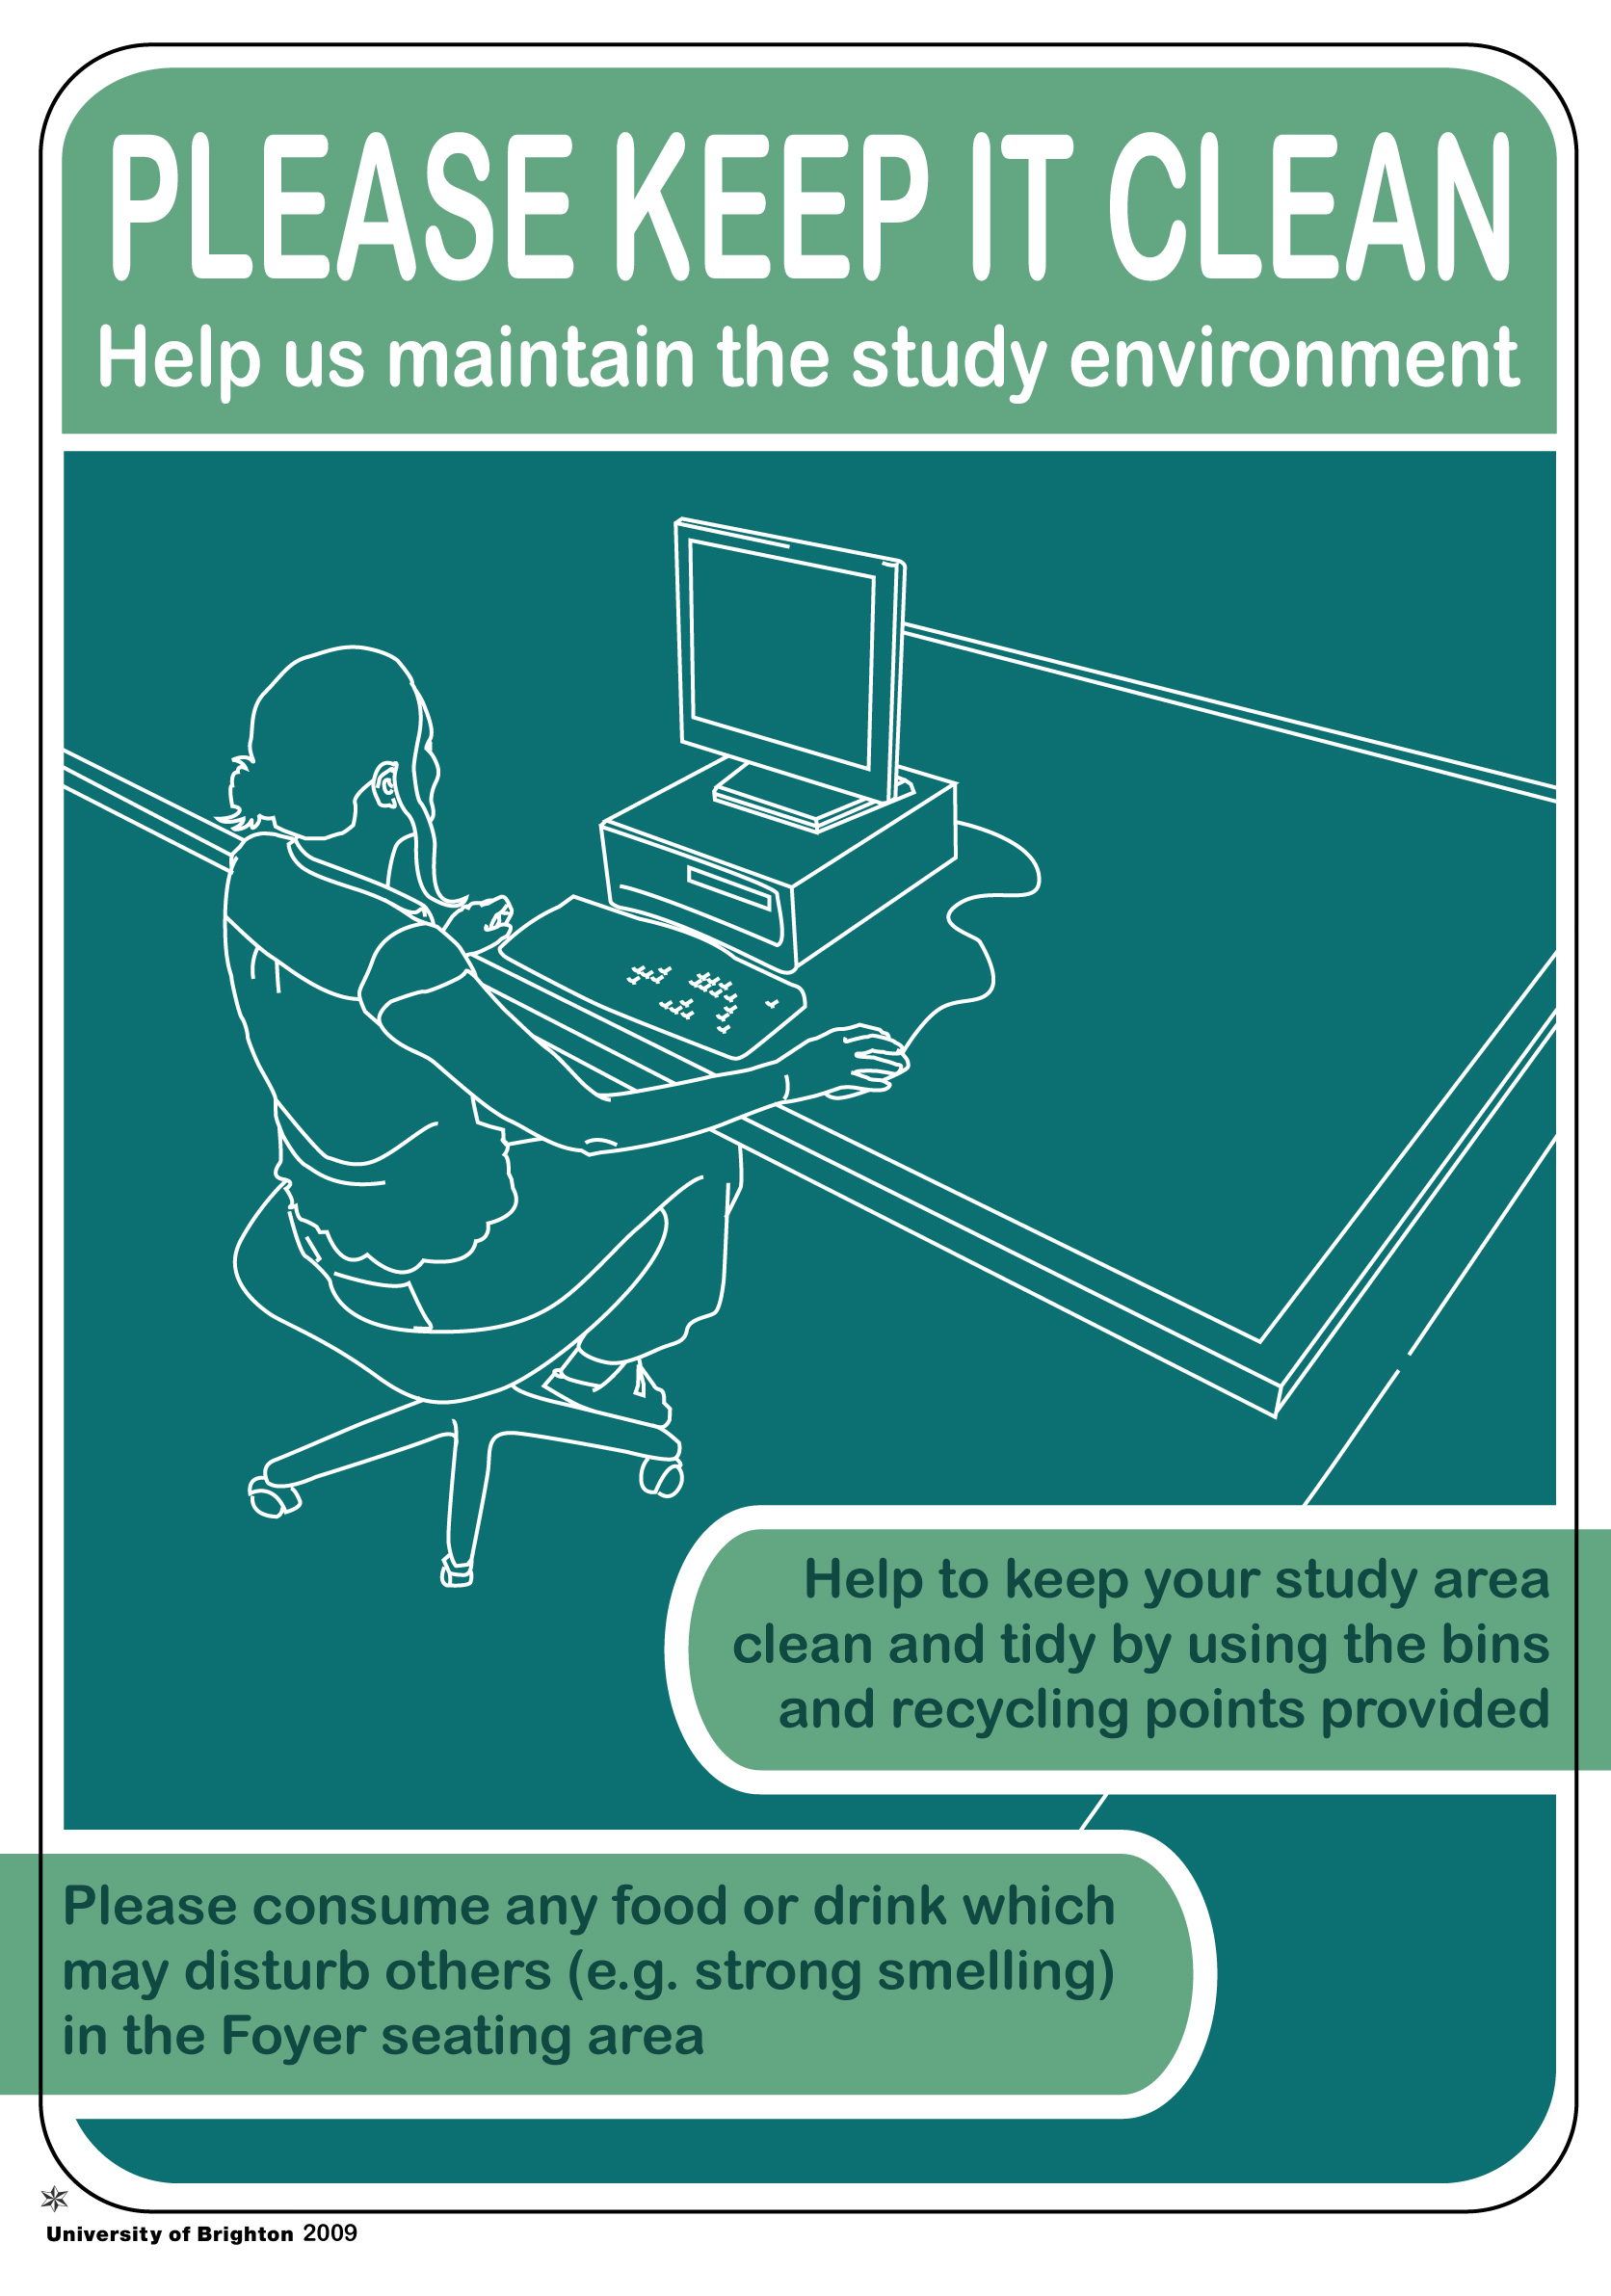 Poster for use within Brighton University library services. Copyright University of Brighton